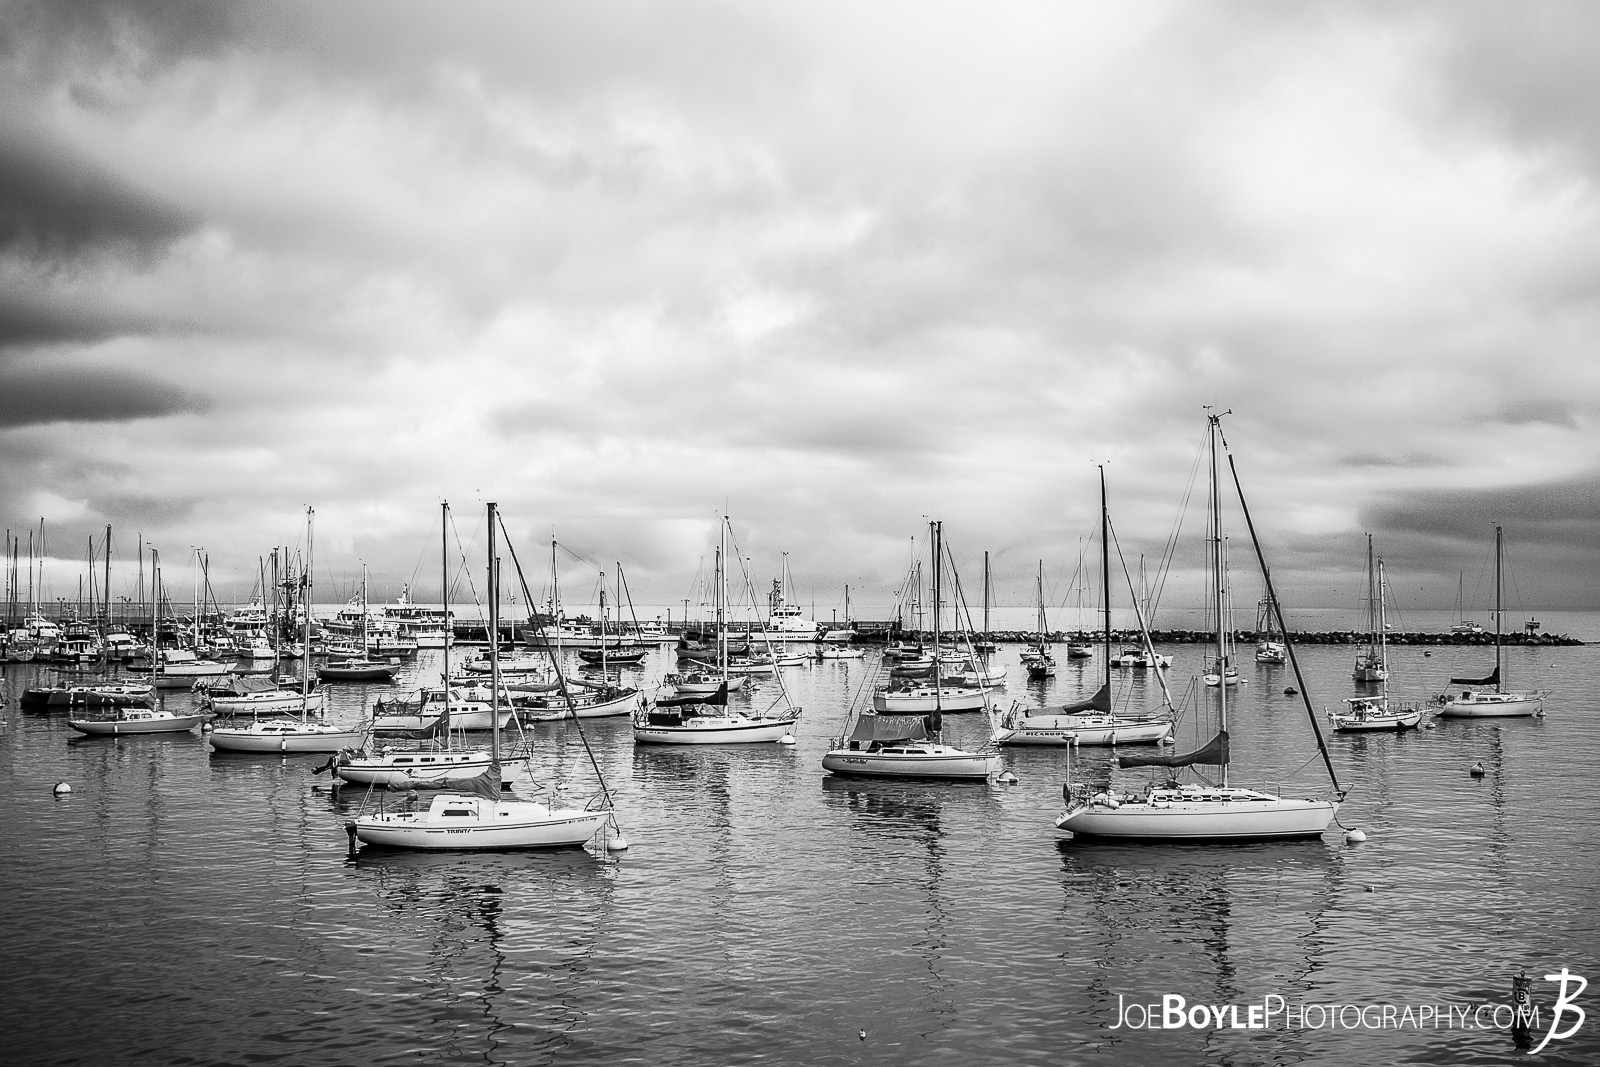 When I was traveling to Monterey, California I spent a lot of time just walking around the city, Pacific Grove and the sand dunes in the area. This is a shot of the bay and sailboats near Fisherman's Wharf and Cannery Row in Monterey!